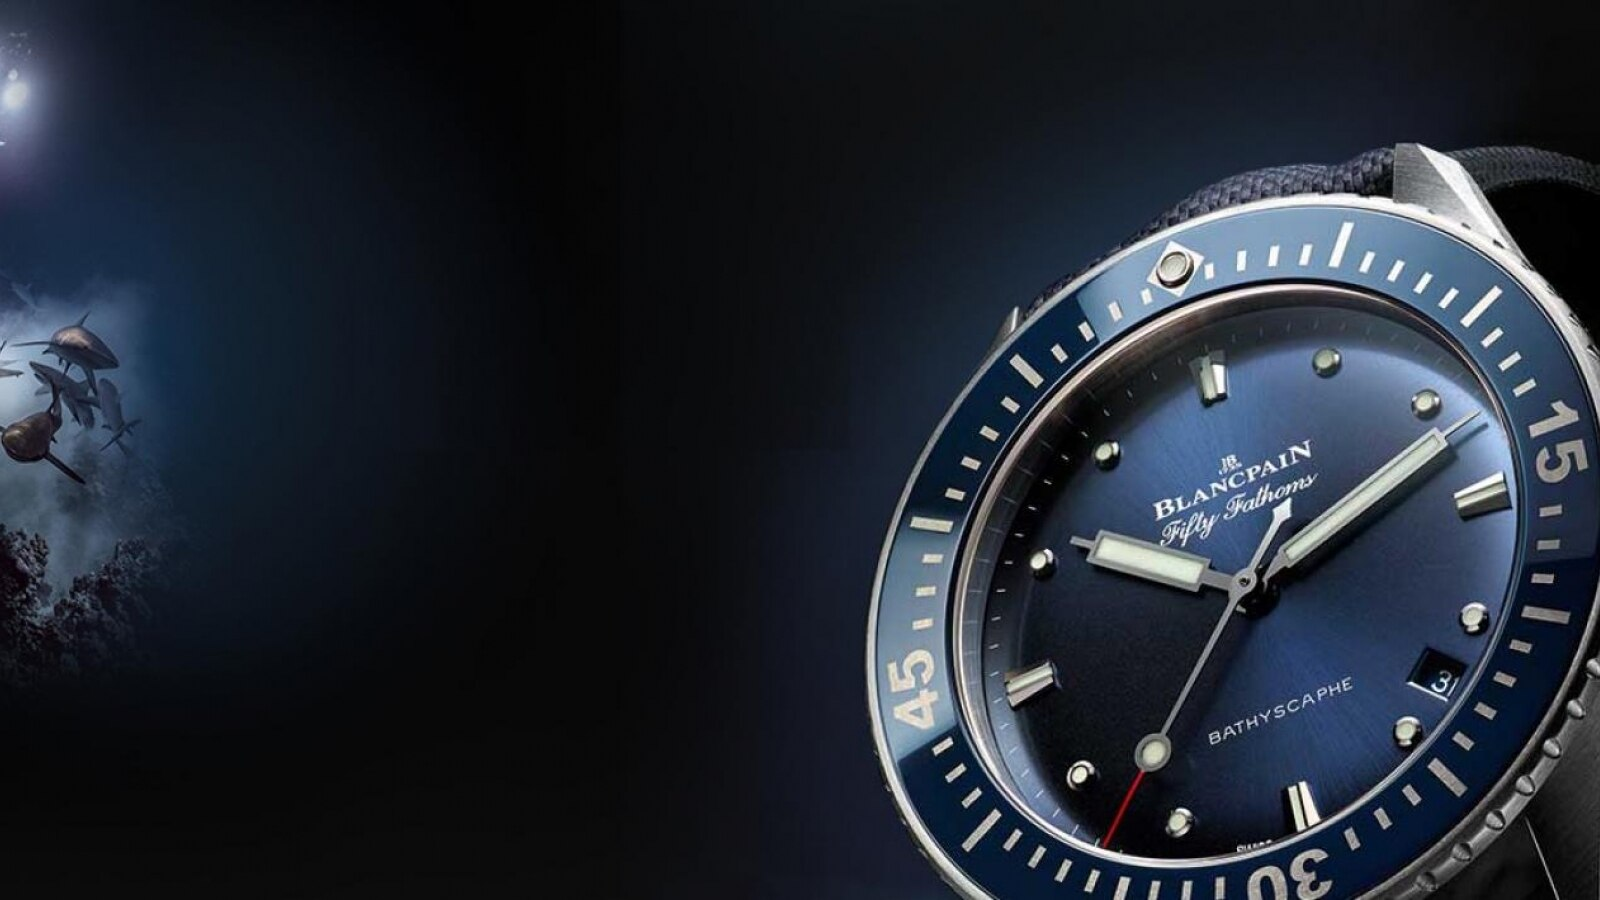 The Fifty Fathoms Collection Blancpain